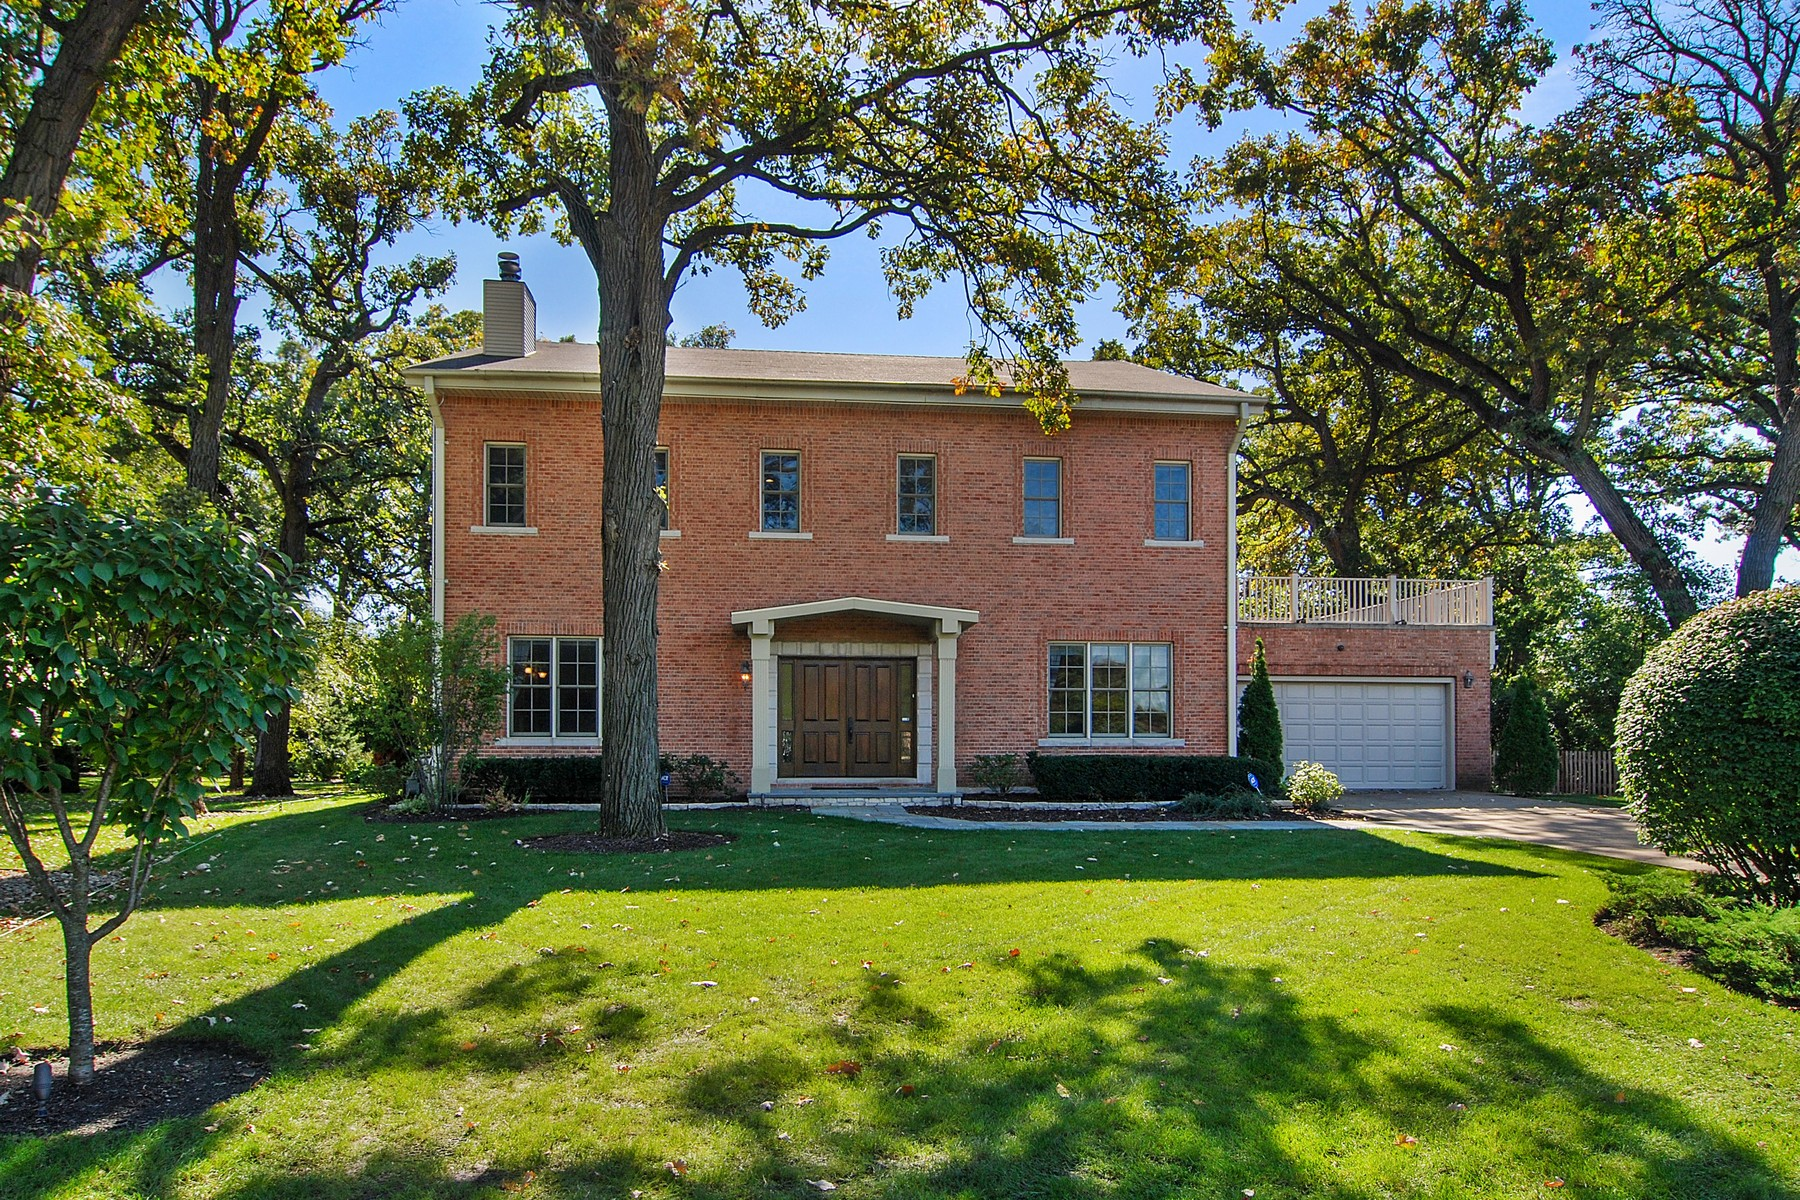 Single Family Home for Sale at 39 Woodside Oak Brook, Illinois, 60523 United States